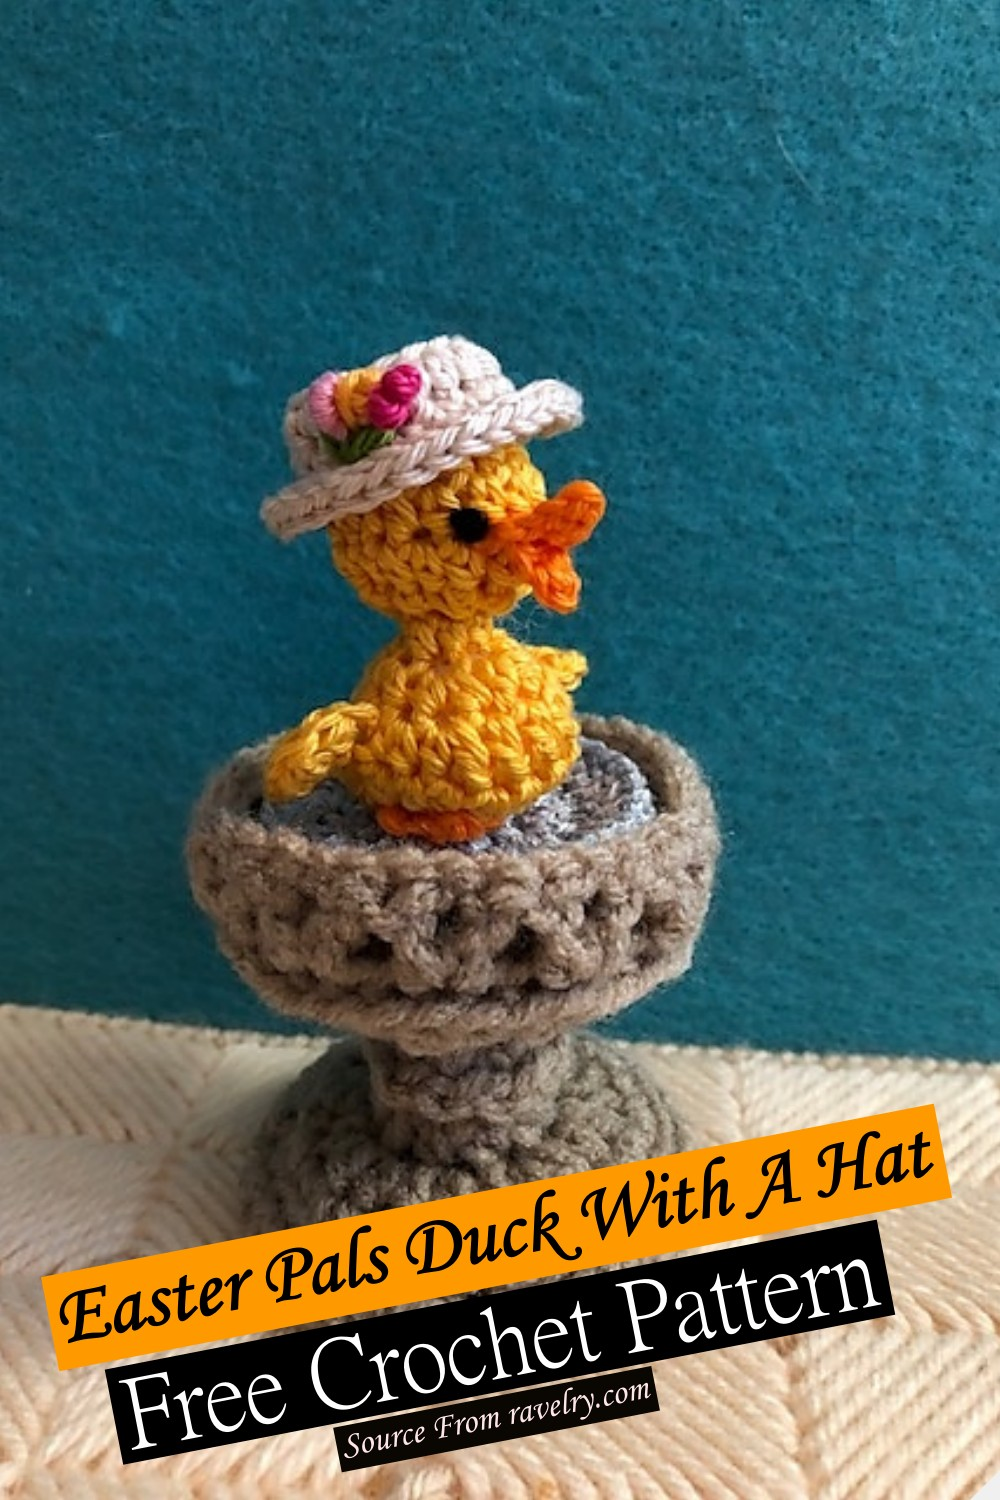 Free Crochet Easter Pals Duck With A Hat Pattern